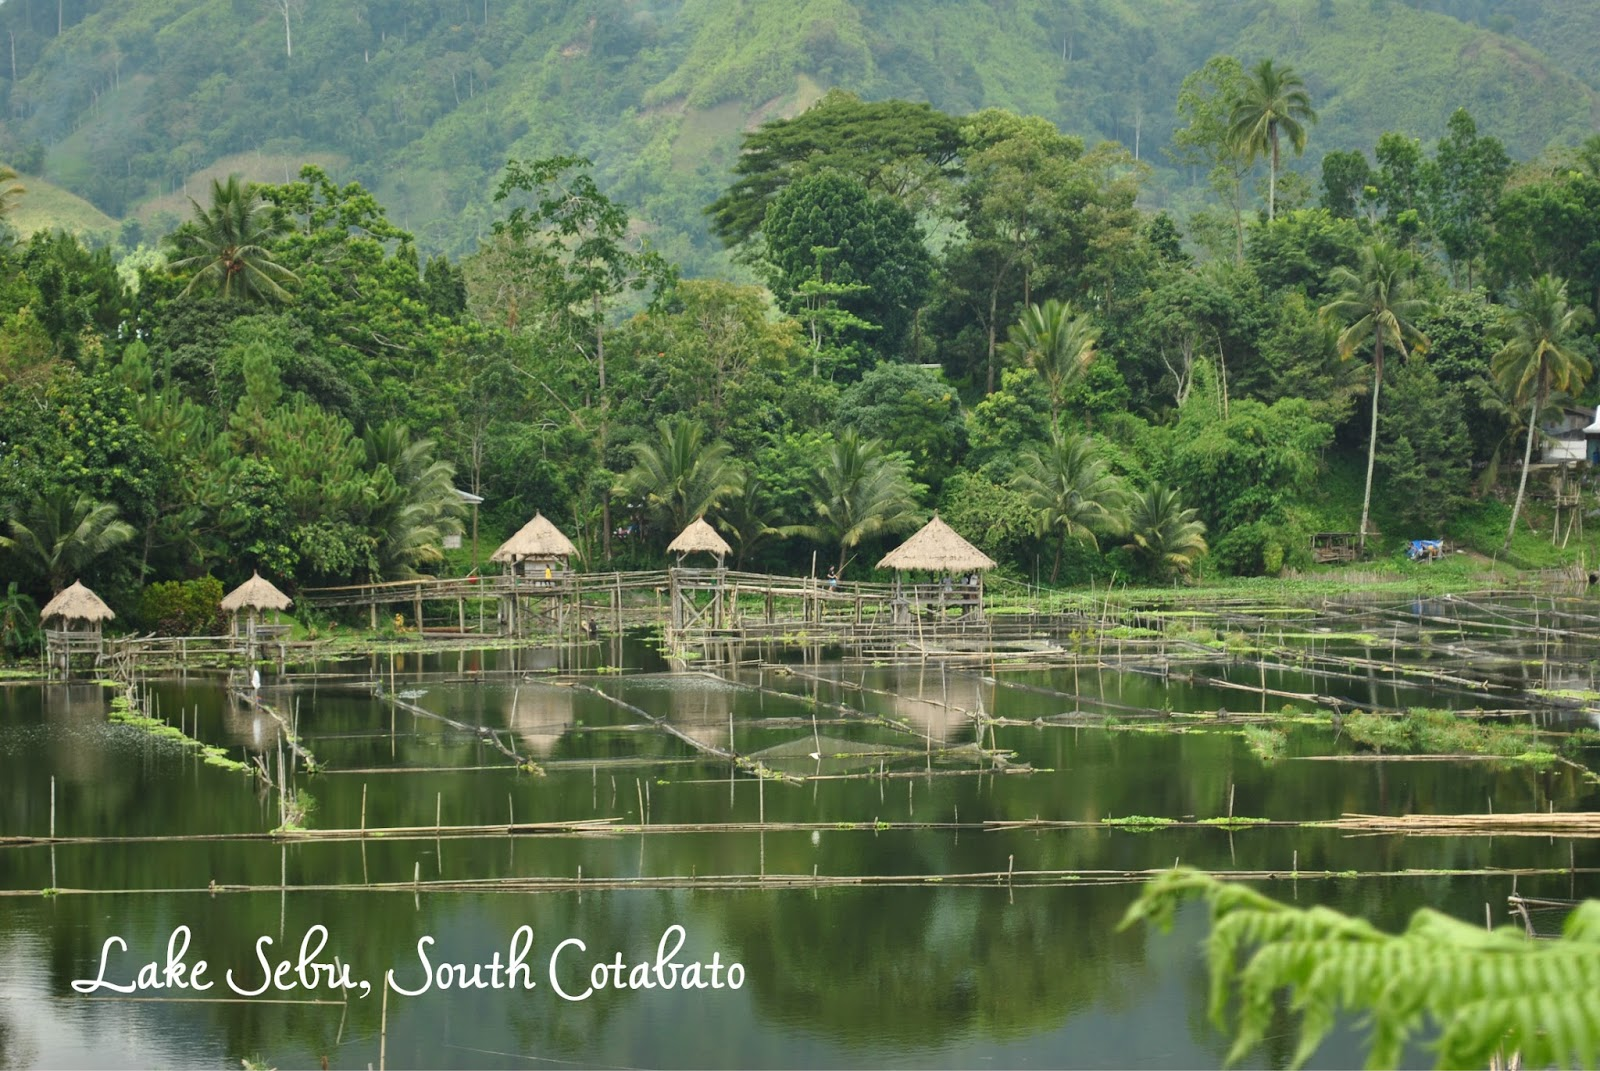 Backpacking pilipinas mindanao roundup south cotabato placid and the verdant mountains mirrored in the calm waters of lake sebu thecheapjerseys Gallery